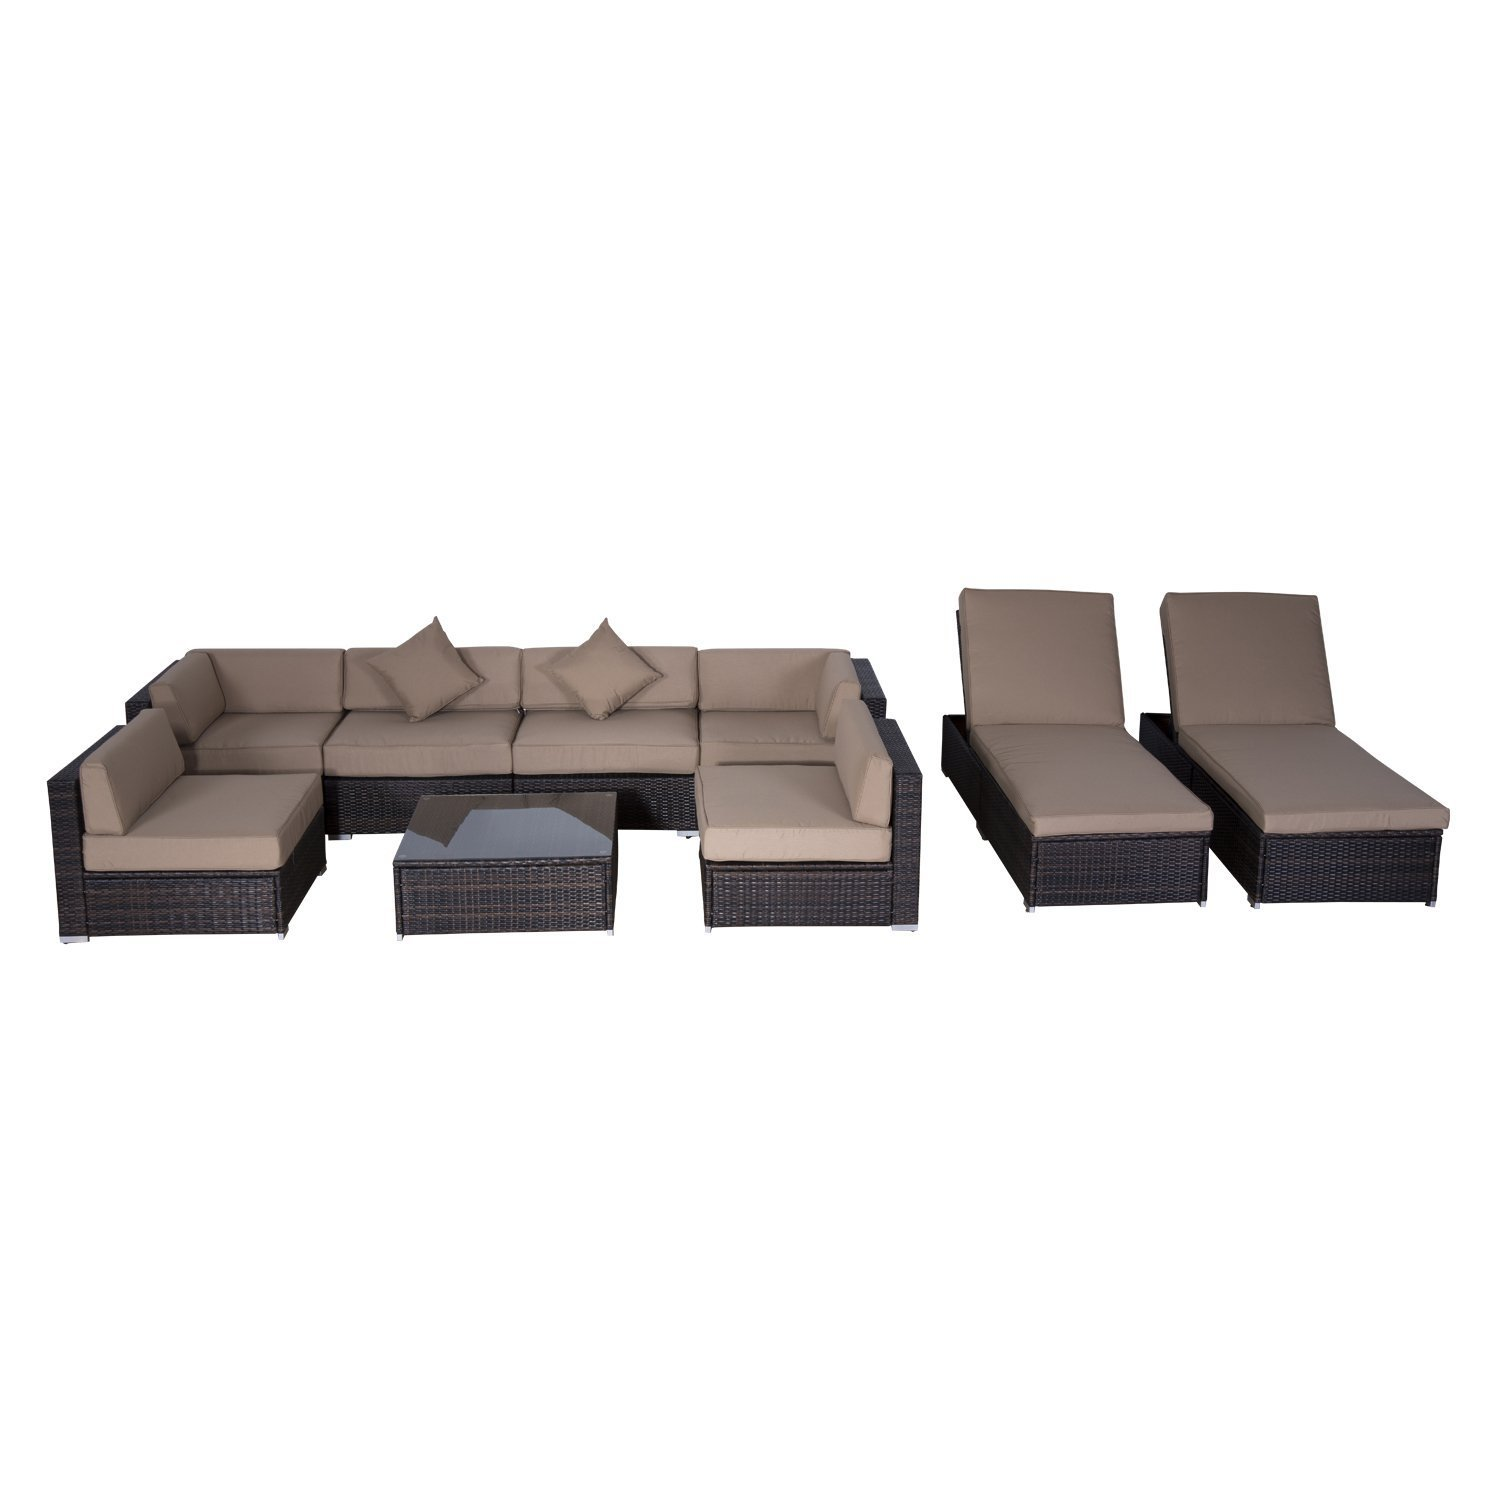 Wicker Patio Furniture Set Outdoor Sofa Sectional Chaise Lounge Loveseat Chair Ebay